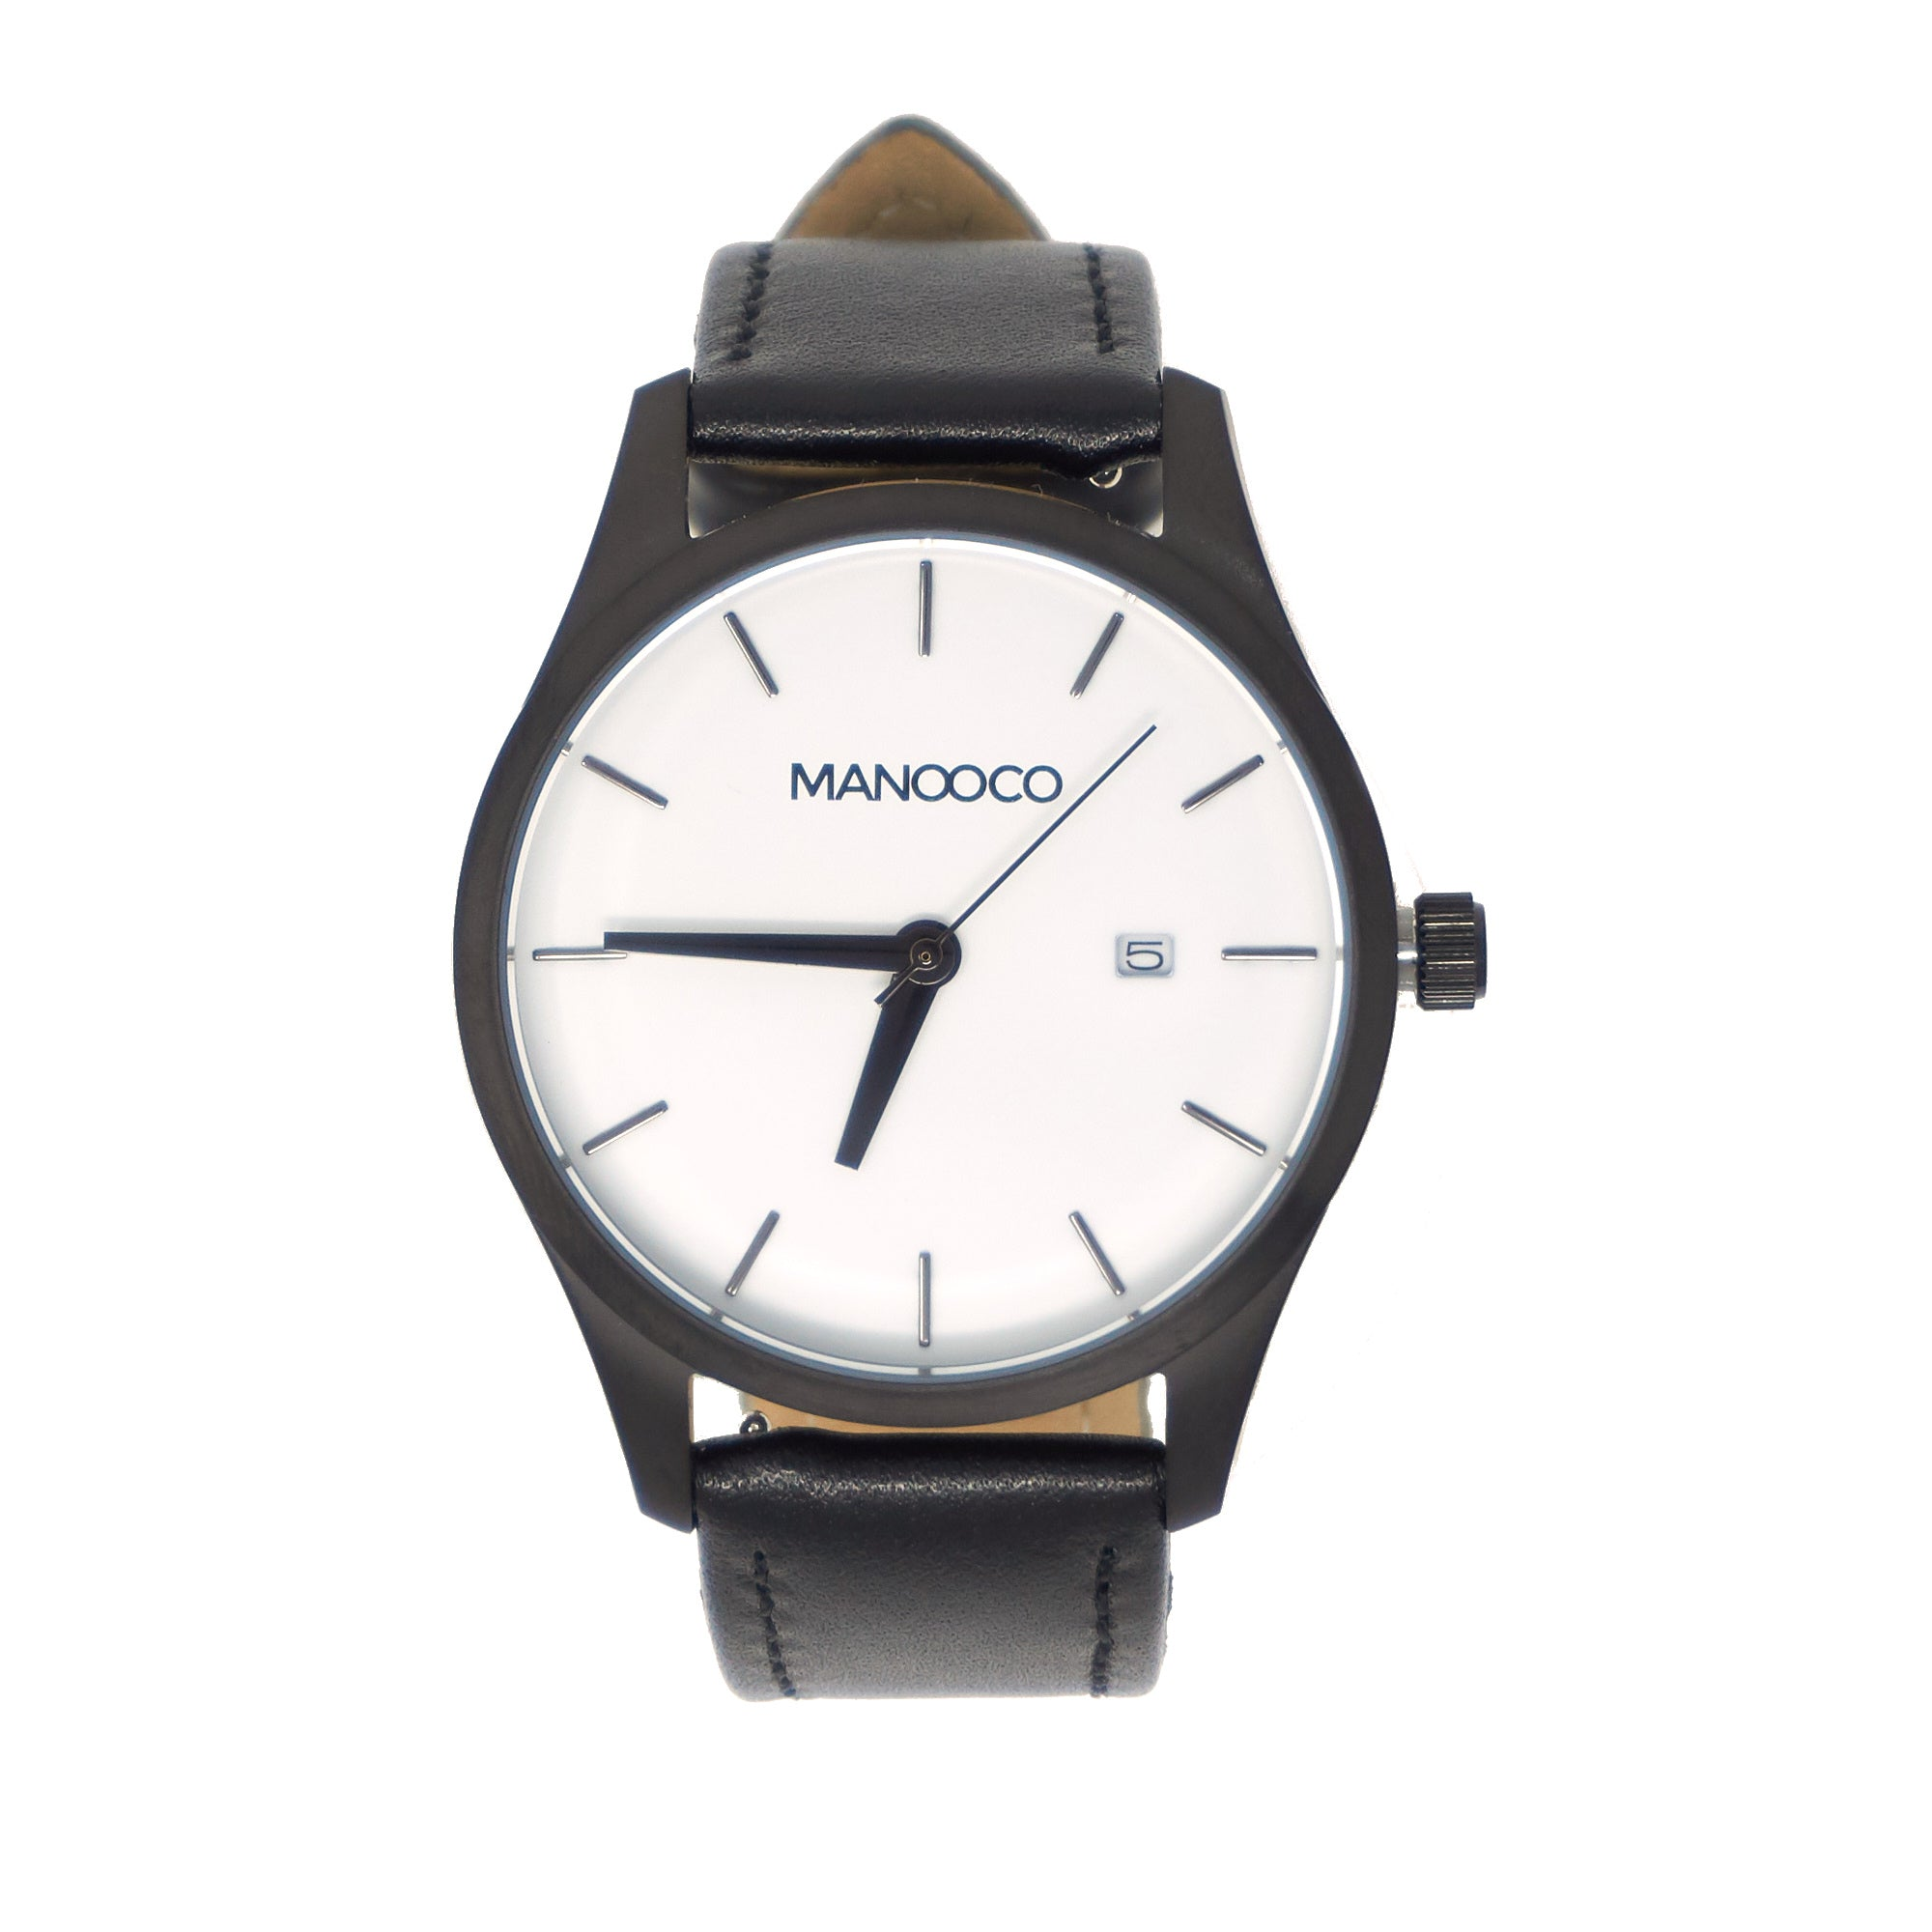 Sol White / Black Leather - Watch - MANOOCO - Watch - manooco